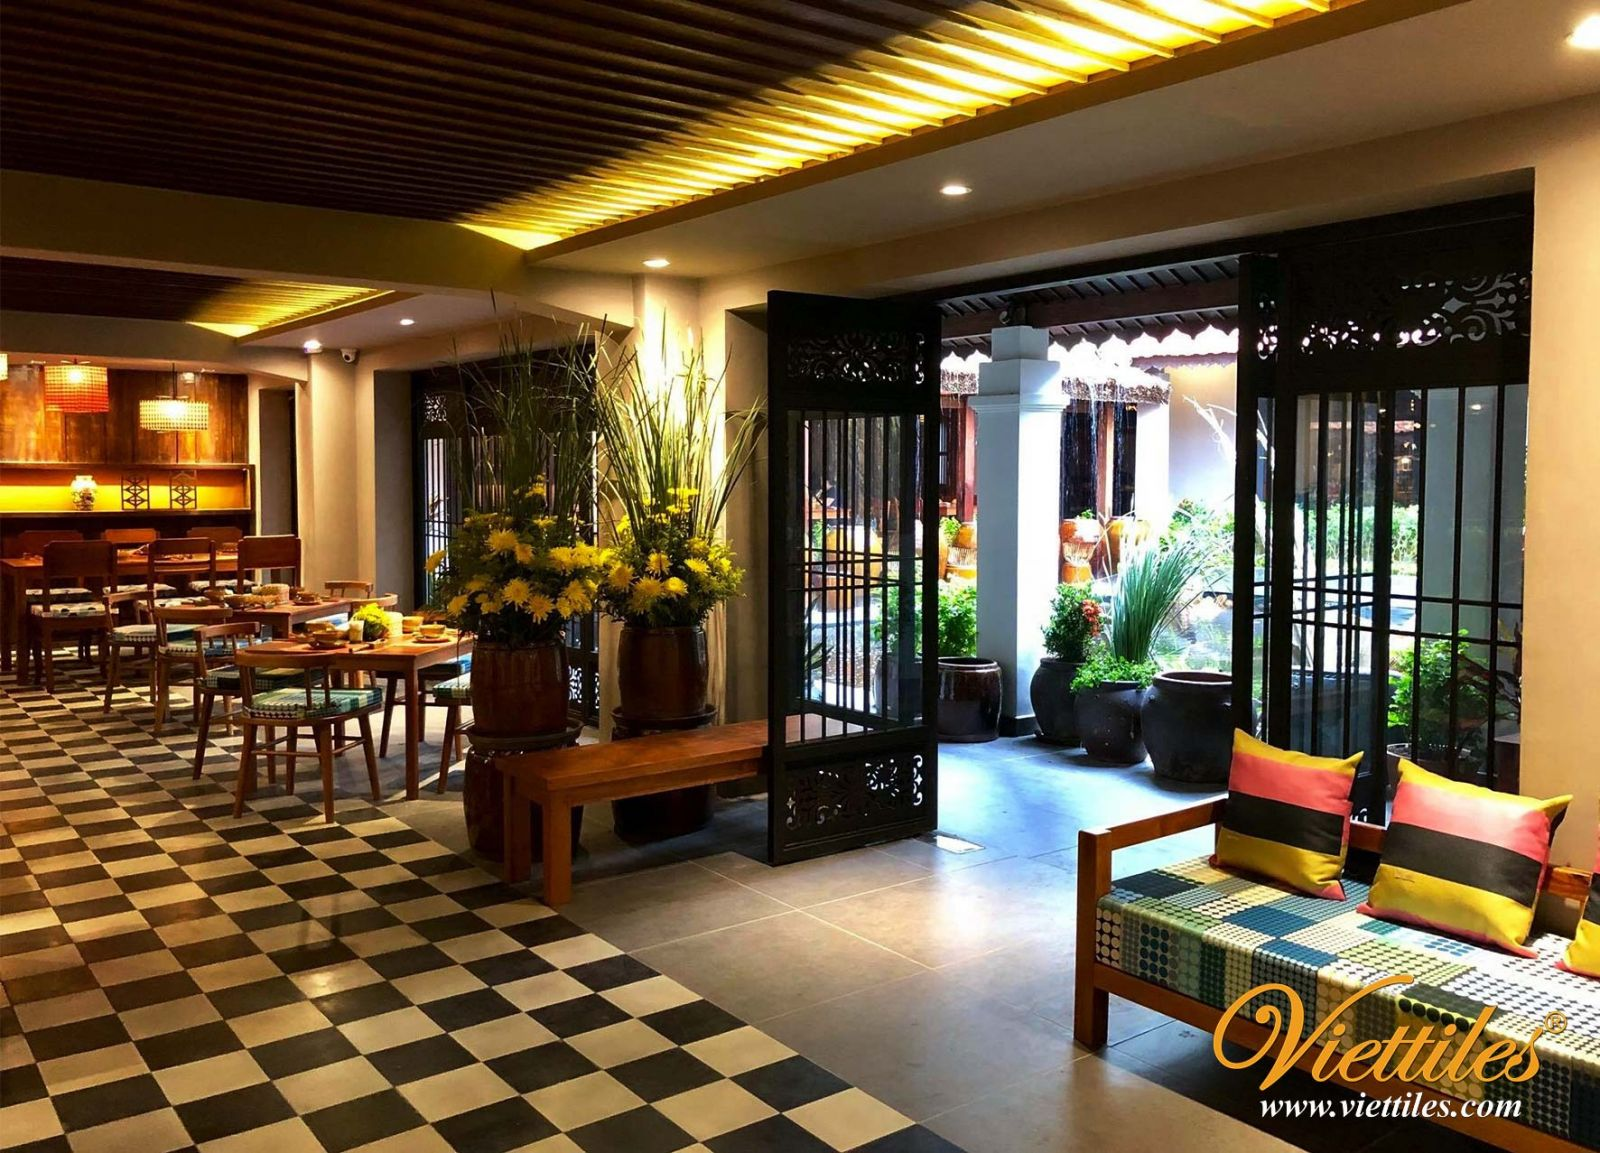 Viettiles's cement tiles with black and white colors is trusted and used by Bep Nha Luc Tinh Restaurant